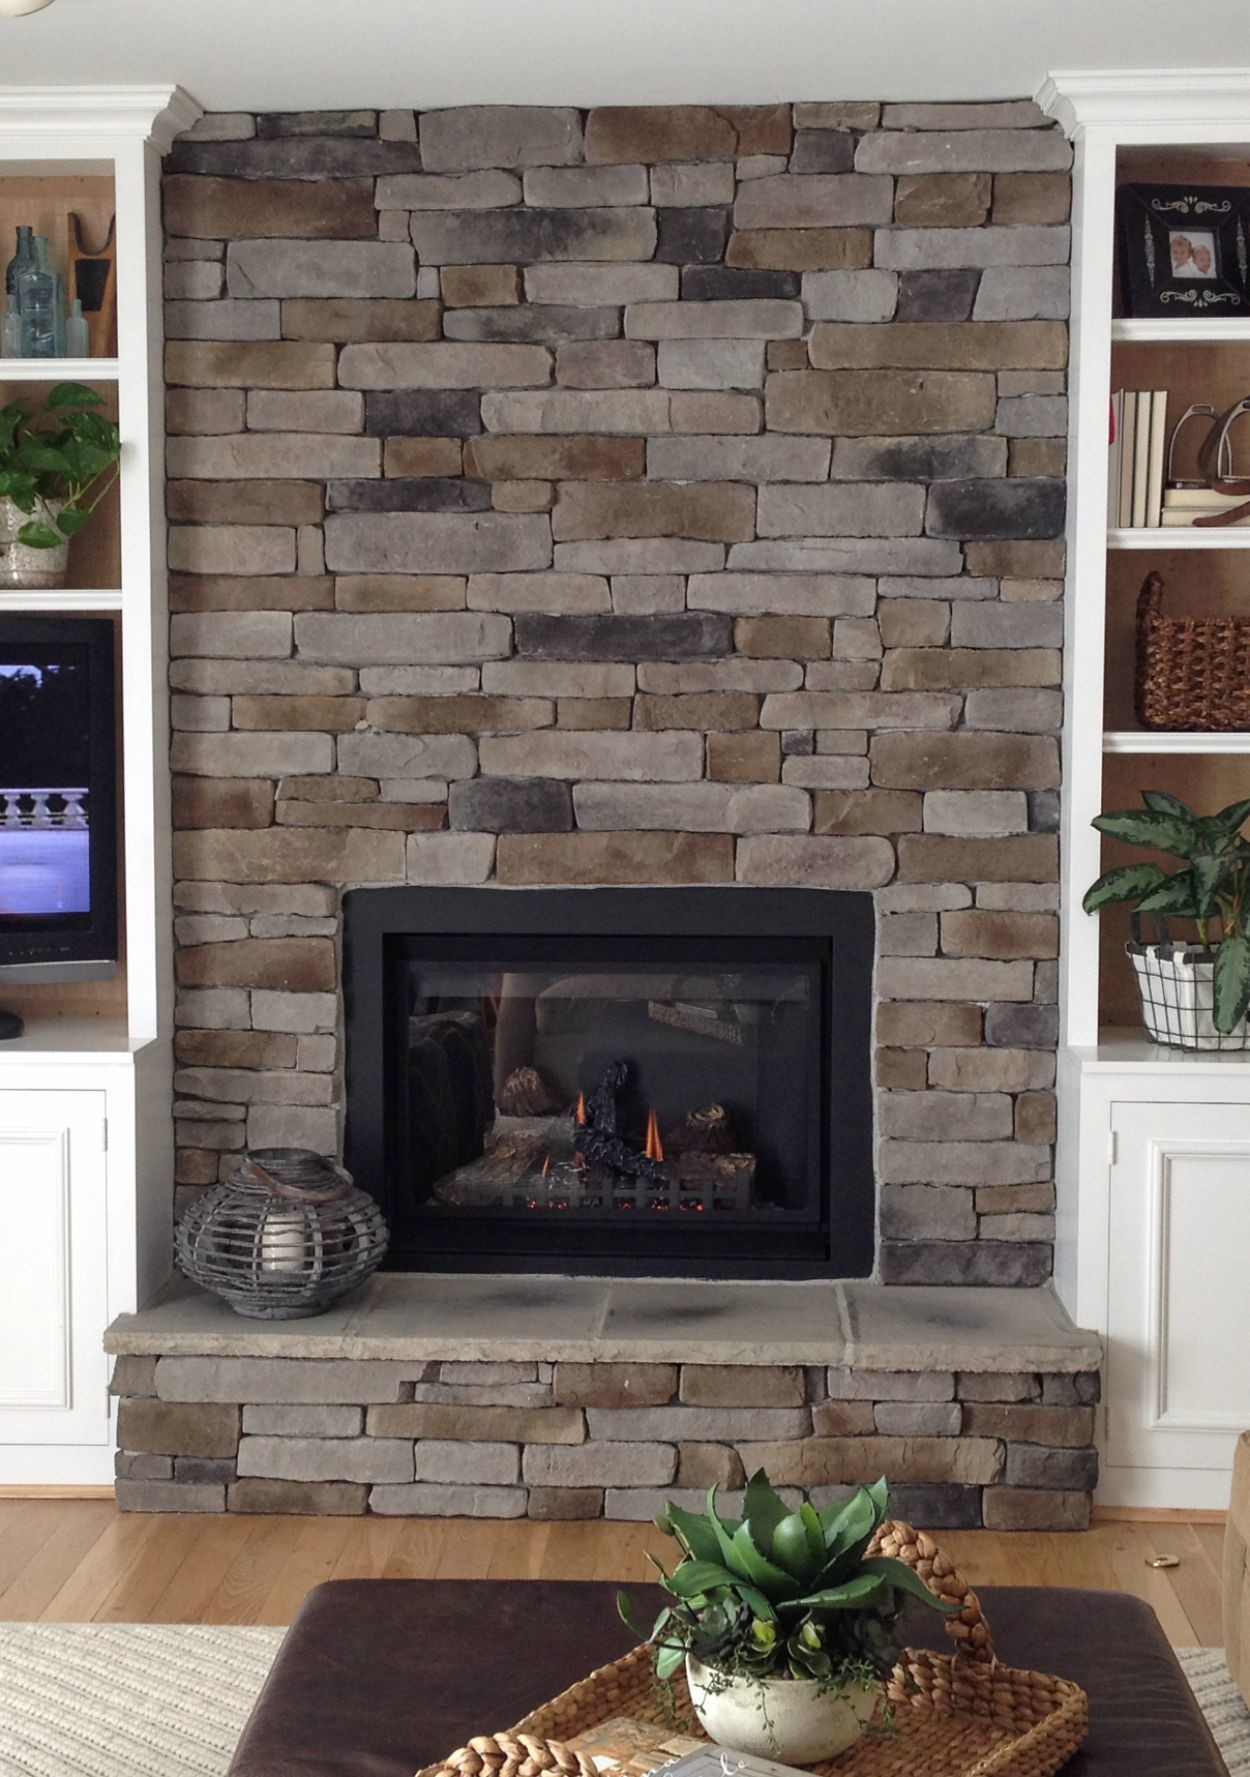 How to Create the Stacked Stone Fireplace Look on a Budget  Martha Stewart